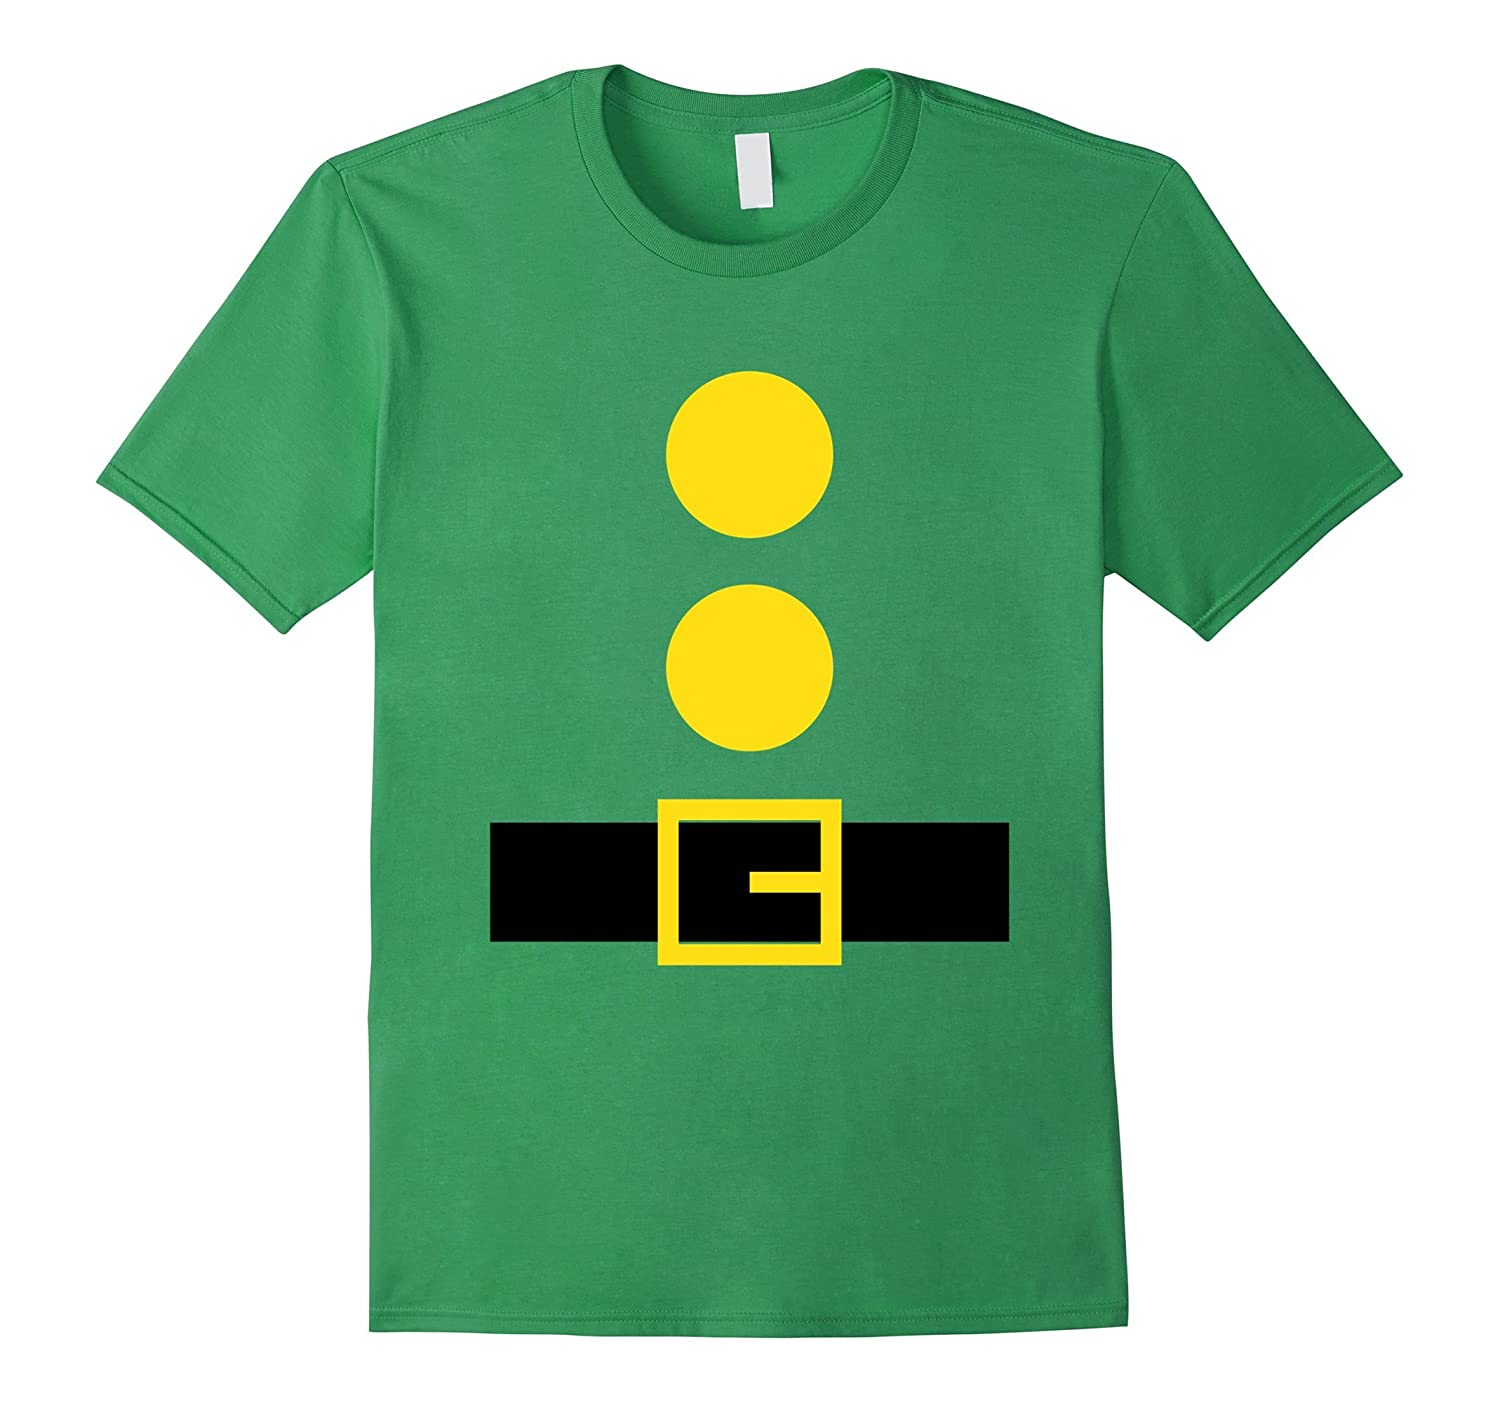 'Dwarf Outfit' Last Minute Halloween Costume Party Shirt-T-Shirt